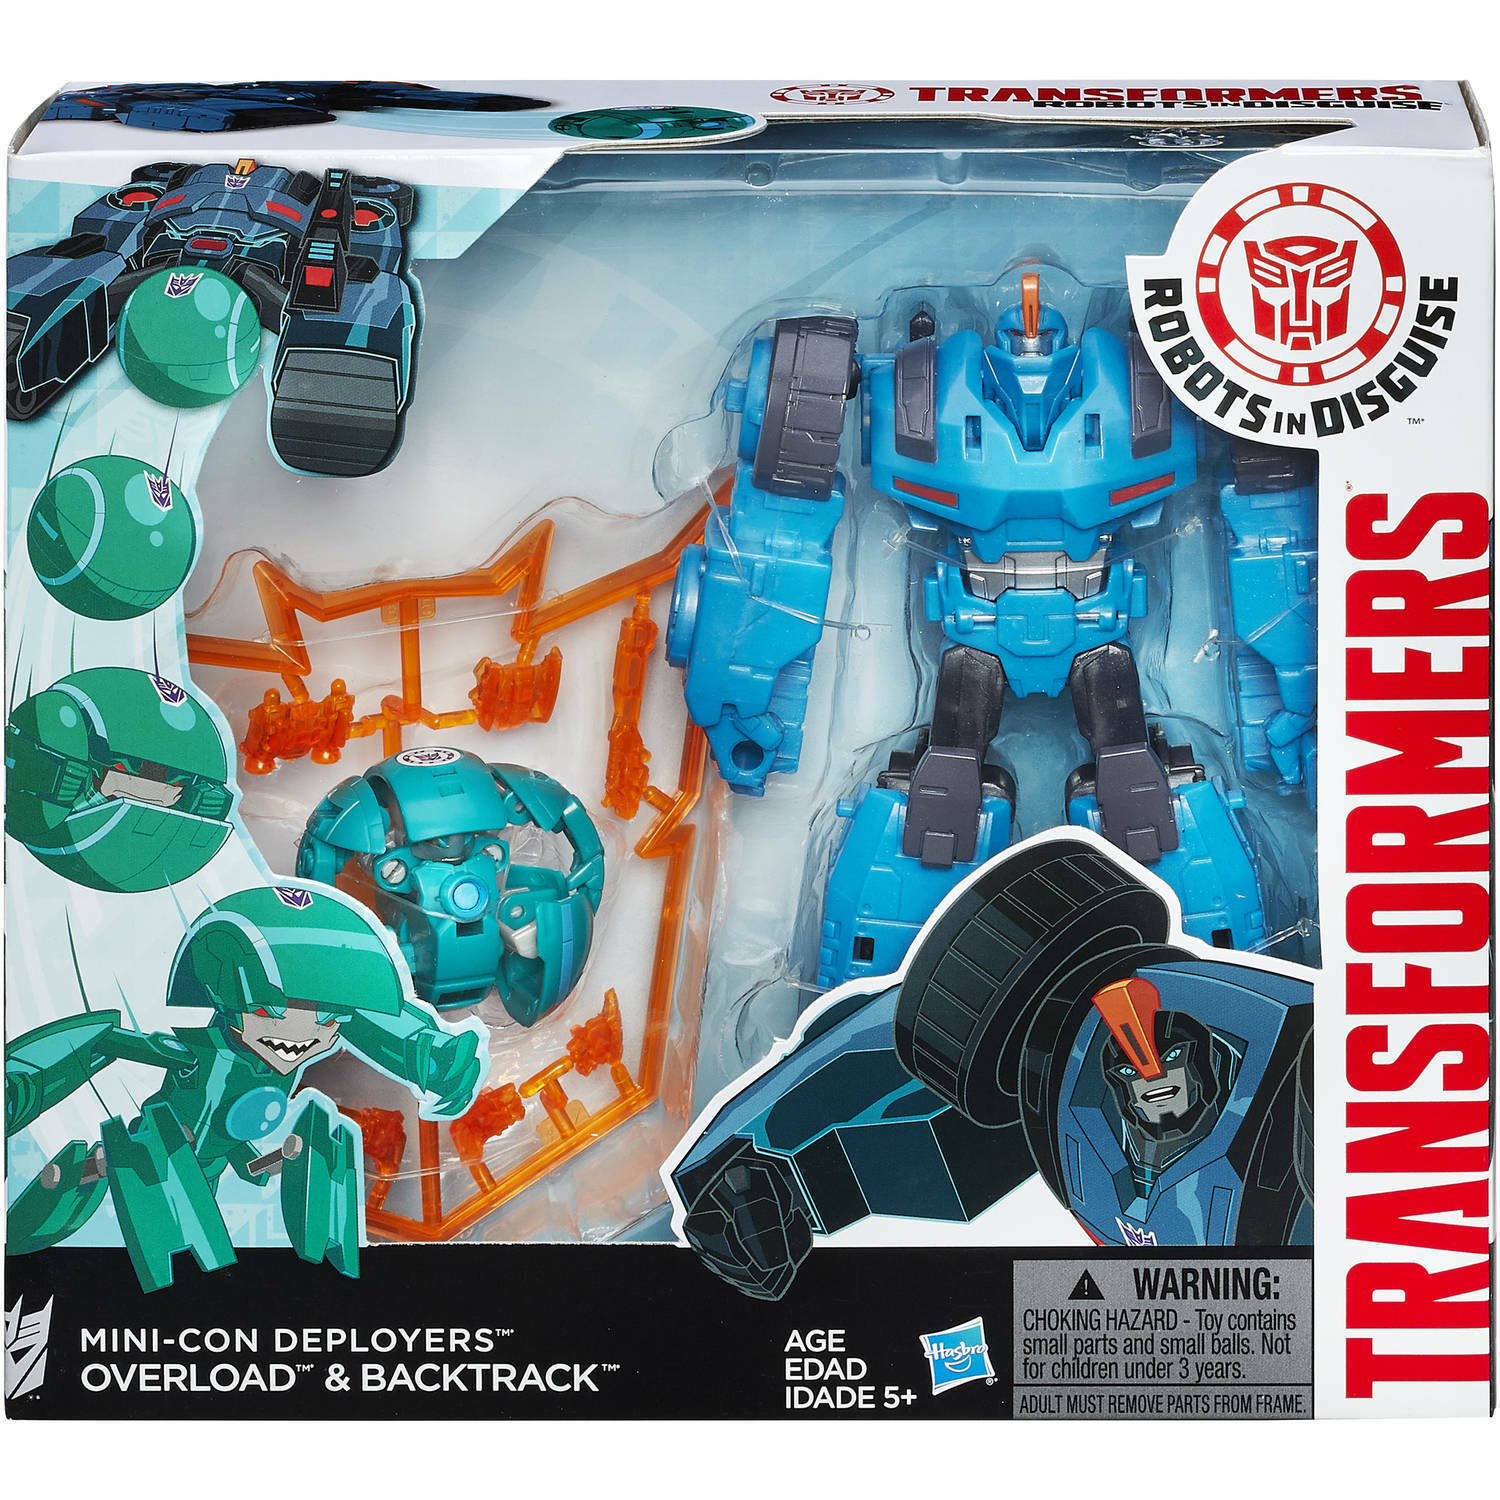 Transformers Robots In Disguise Mini-Con Deployers Action Figure  Overload